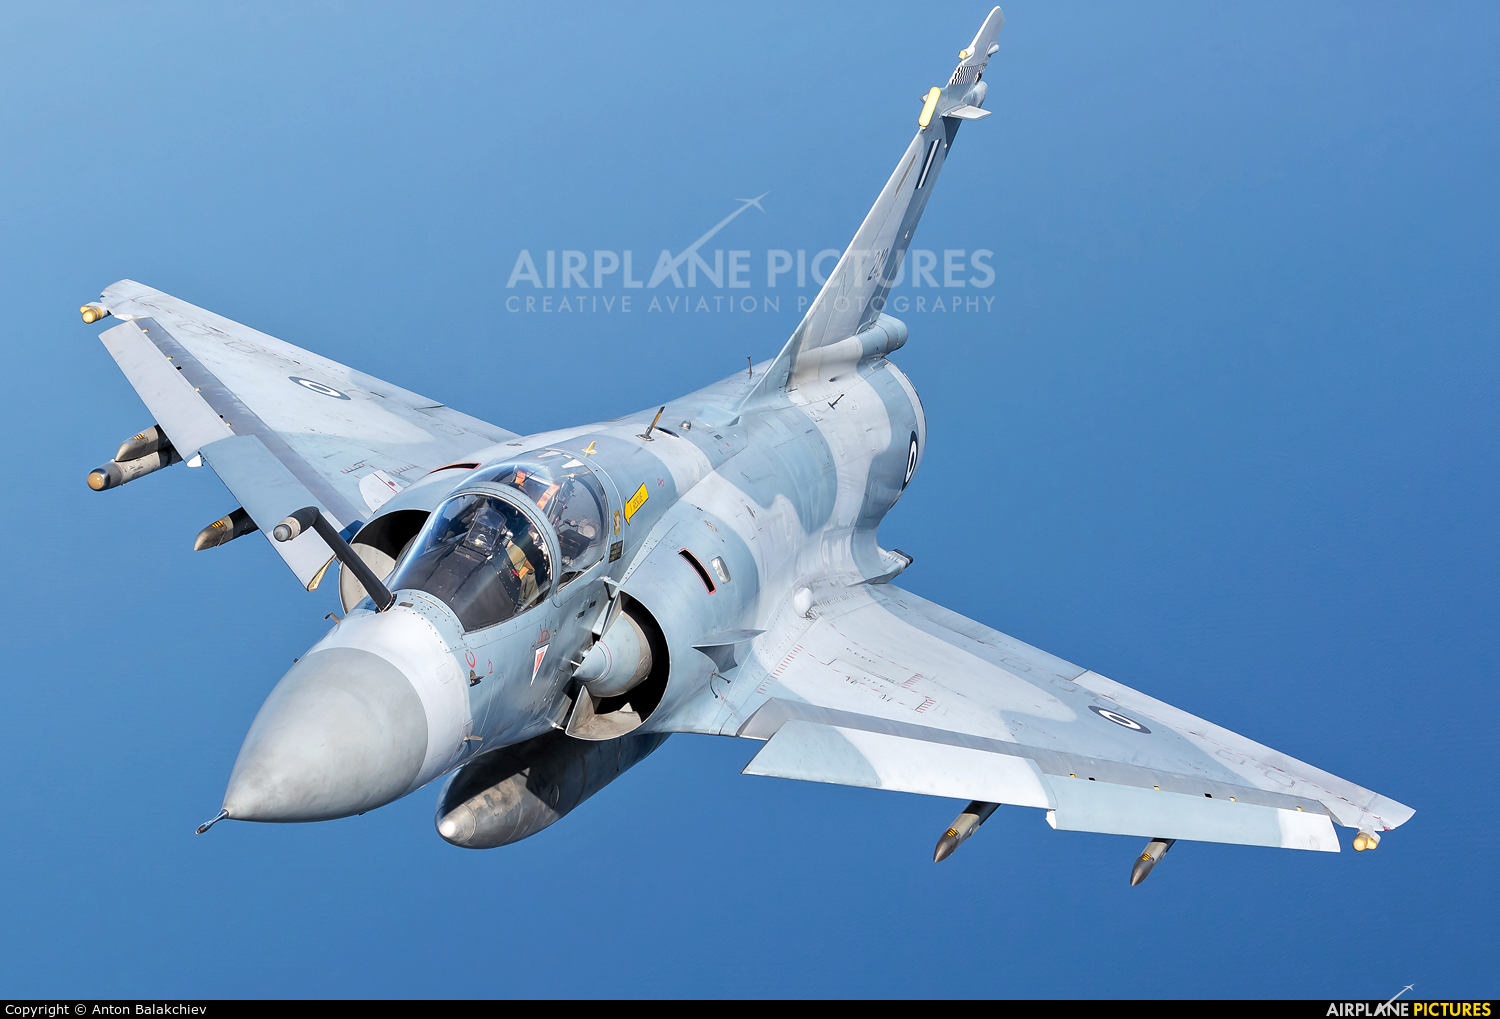 Greece - Hellenic Air Force 242 aircraft at In Flight - Greece